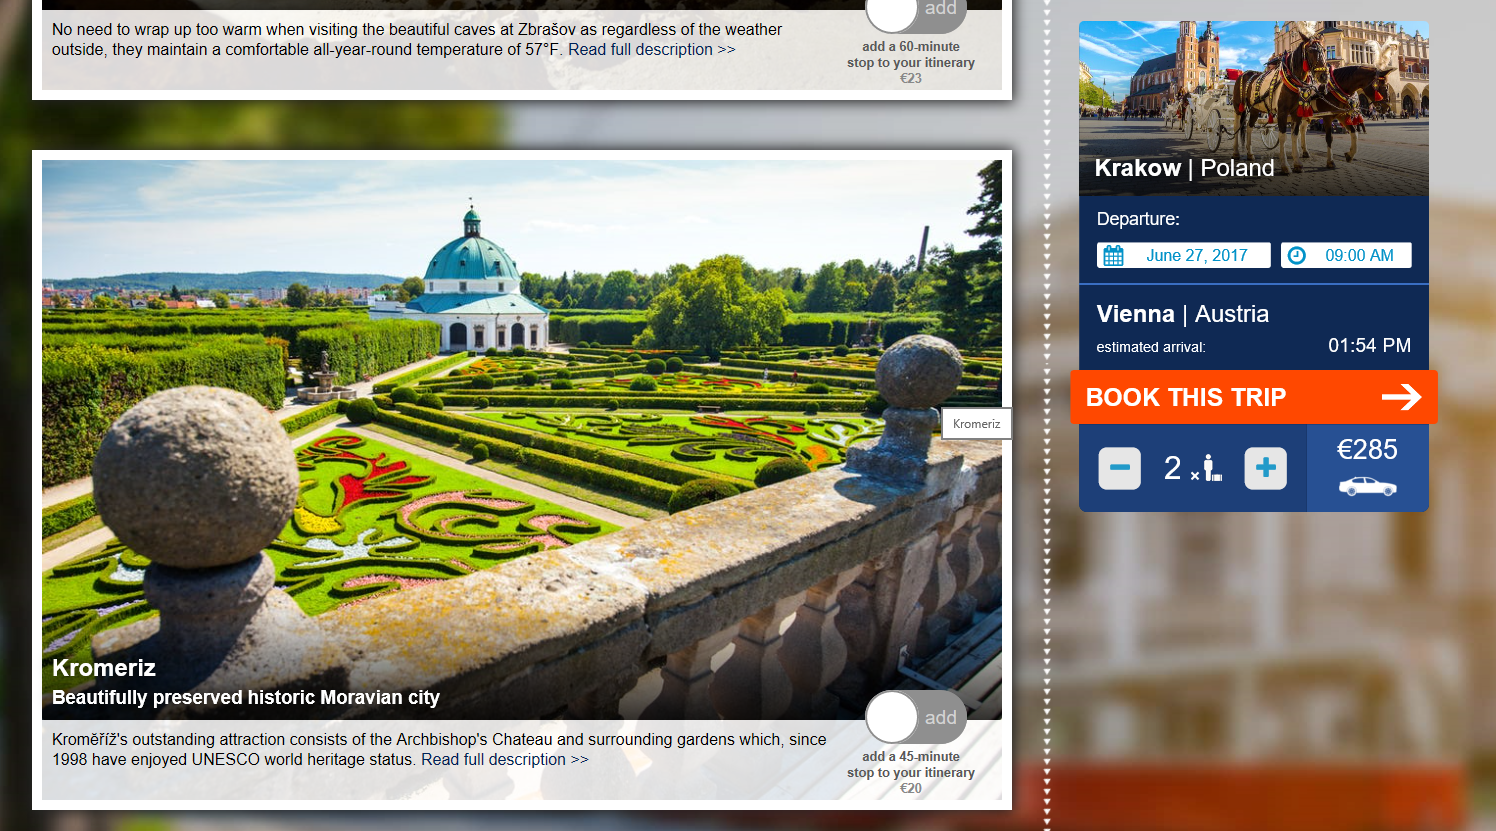 A screen shot of the actual website. You can choose stops along the journey.